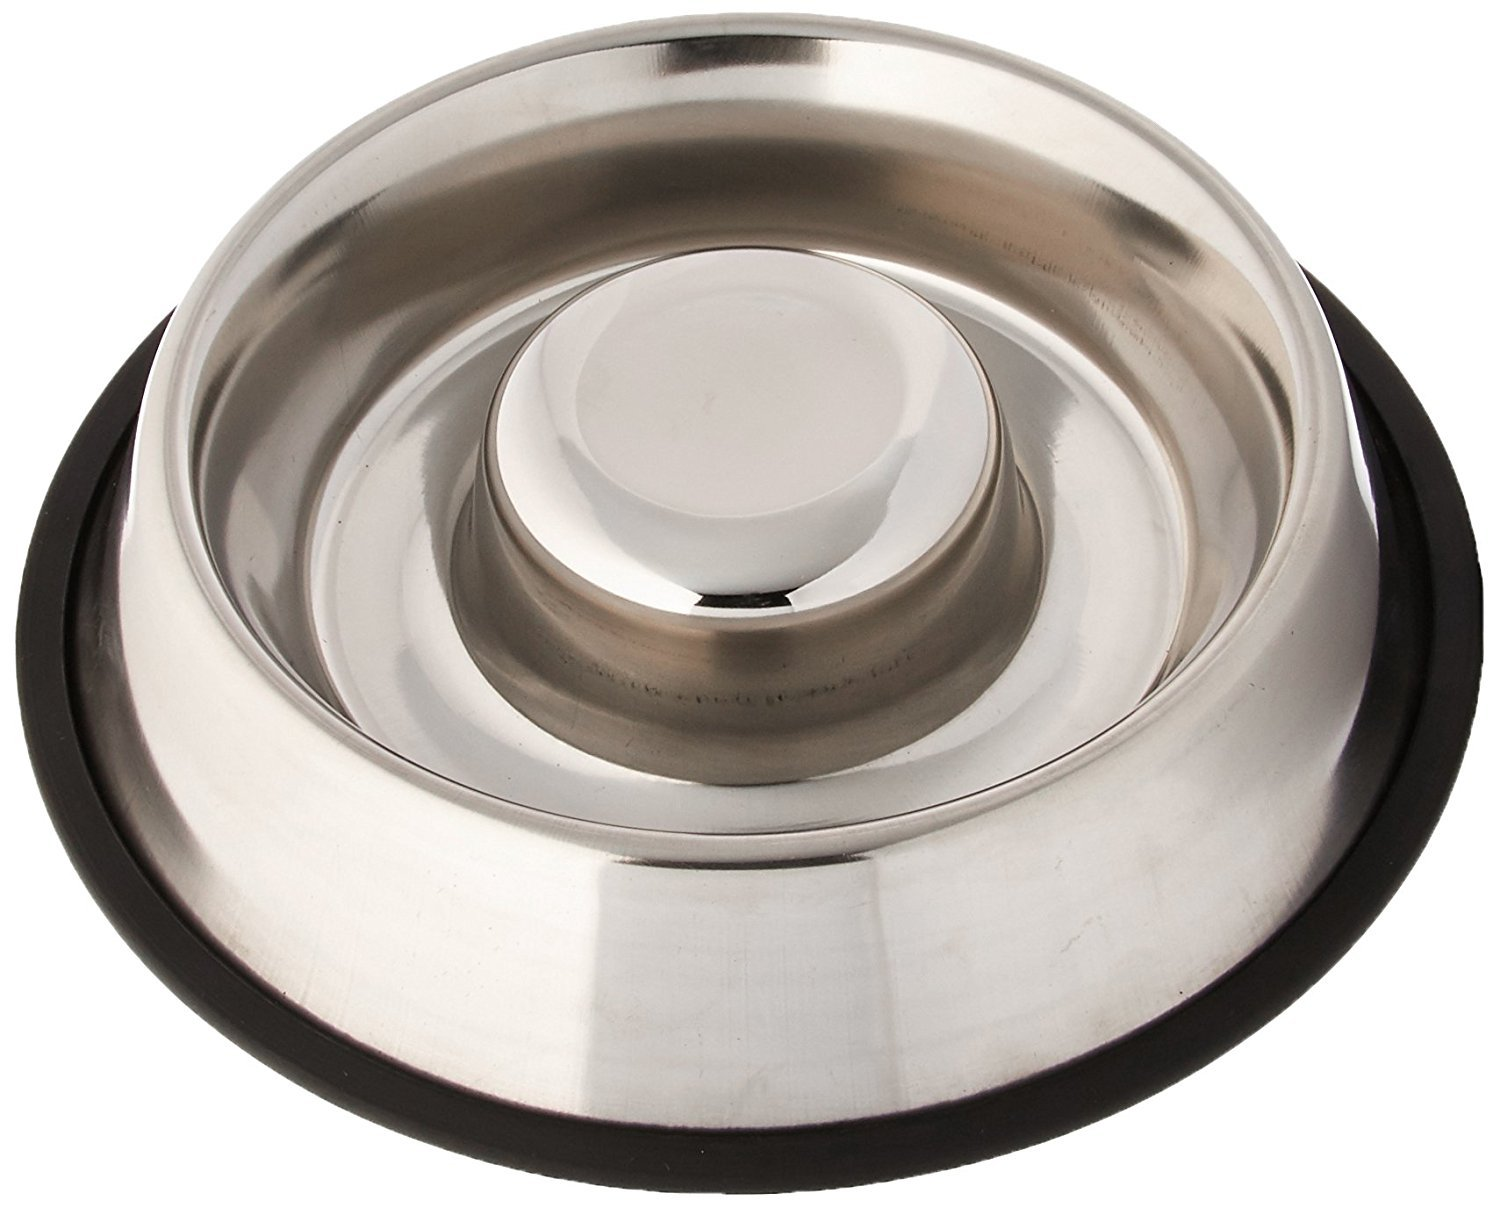 Pets Empire Extra Heavy Stainless Steel Non Tip - Anti Skid Health Care Slow Feeding Dish (900ML)